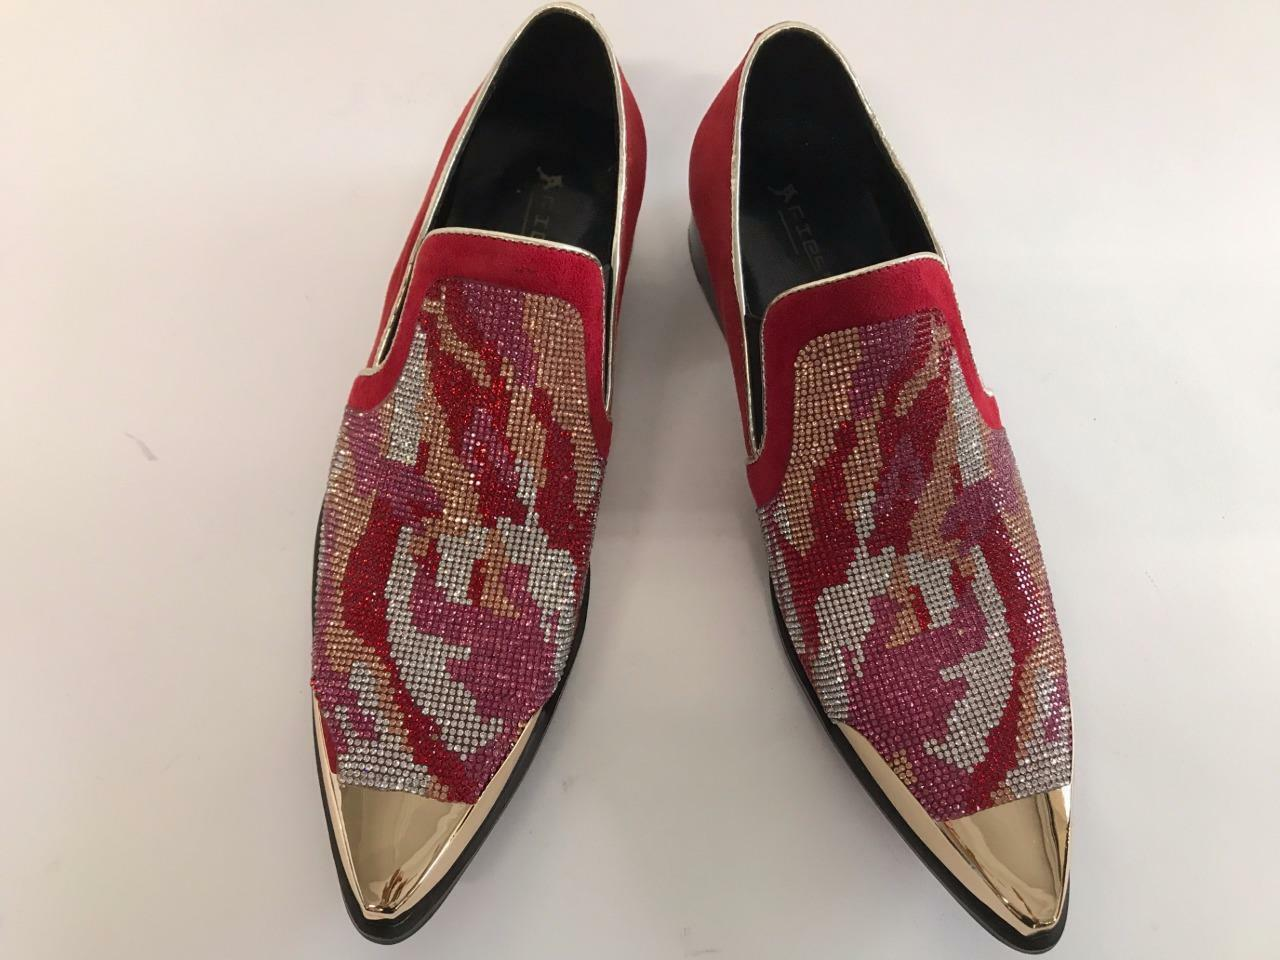 Men's Fiesso Suede Red Gold Shoes Silver Gold Rhinestones Gold Red Metal Tip FI 7089-2 62438f